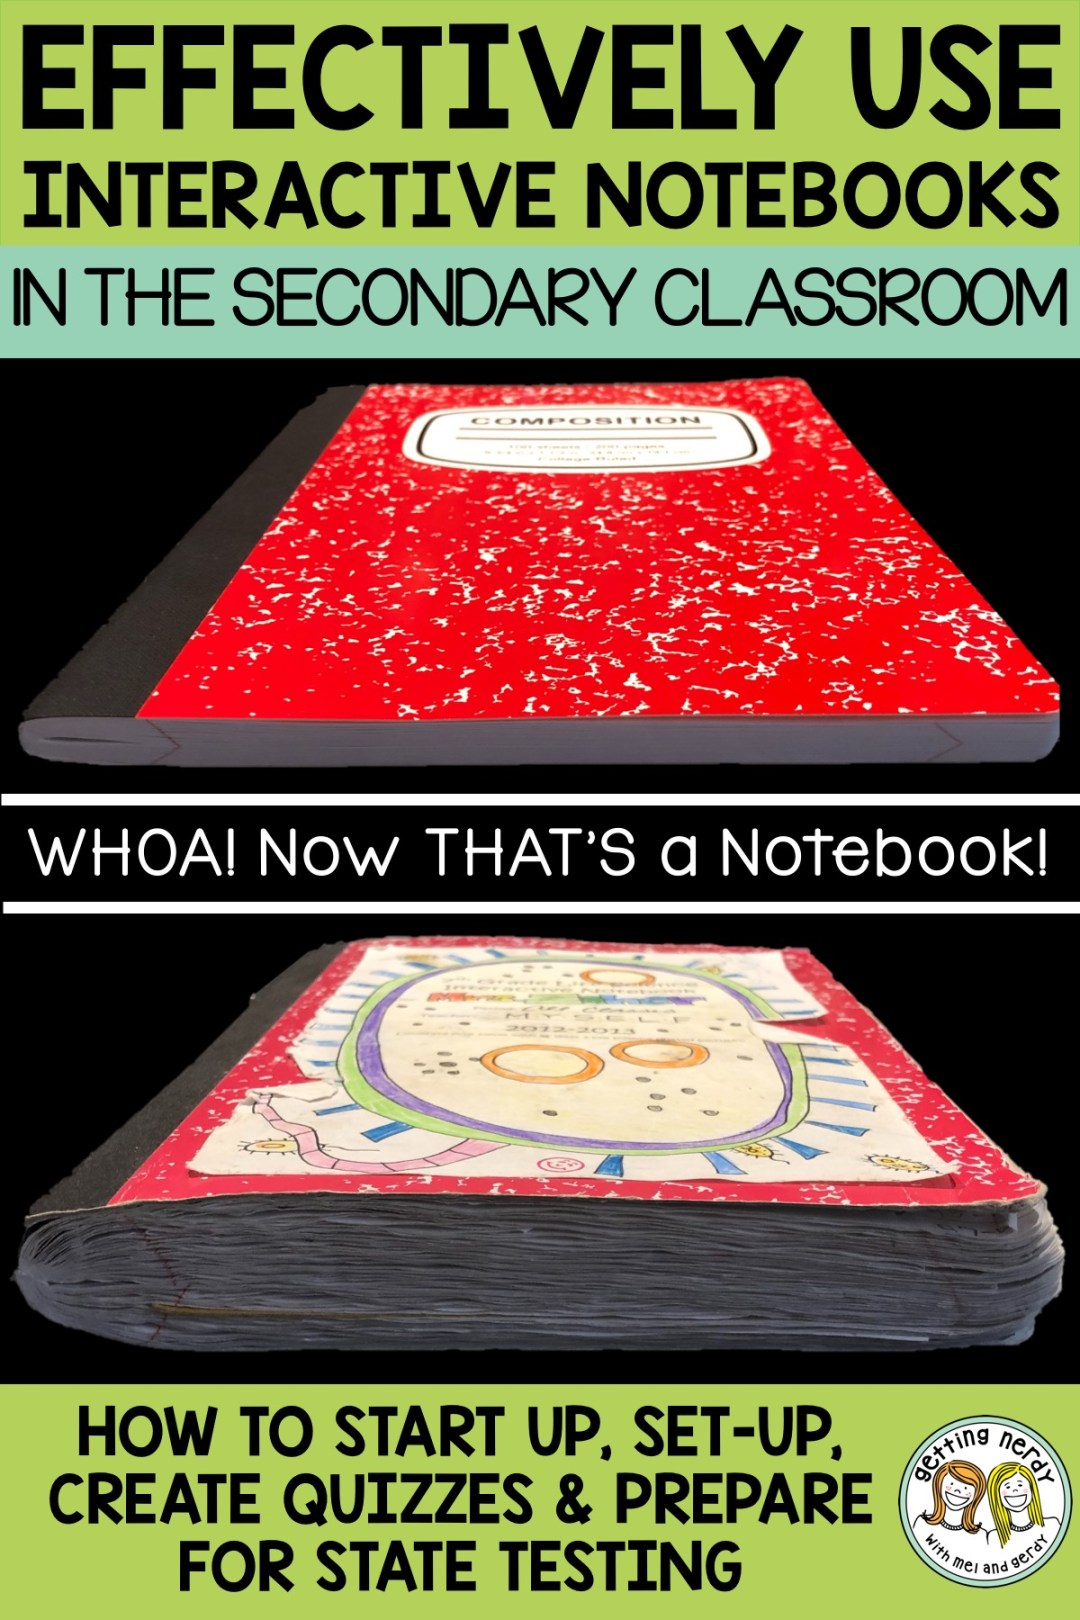 Teacher-tested tips for effectively using interactive notebooks in secondary science classrooms - Getting Nerdy Science